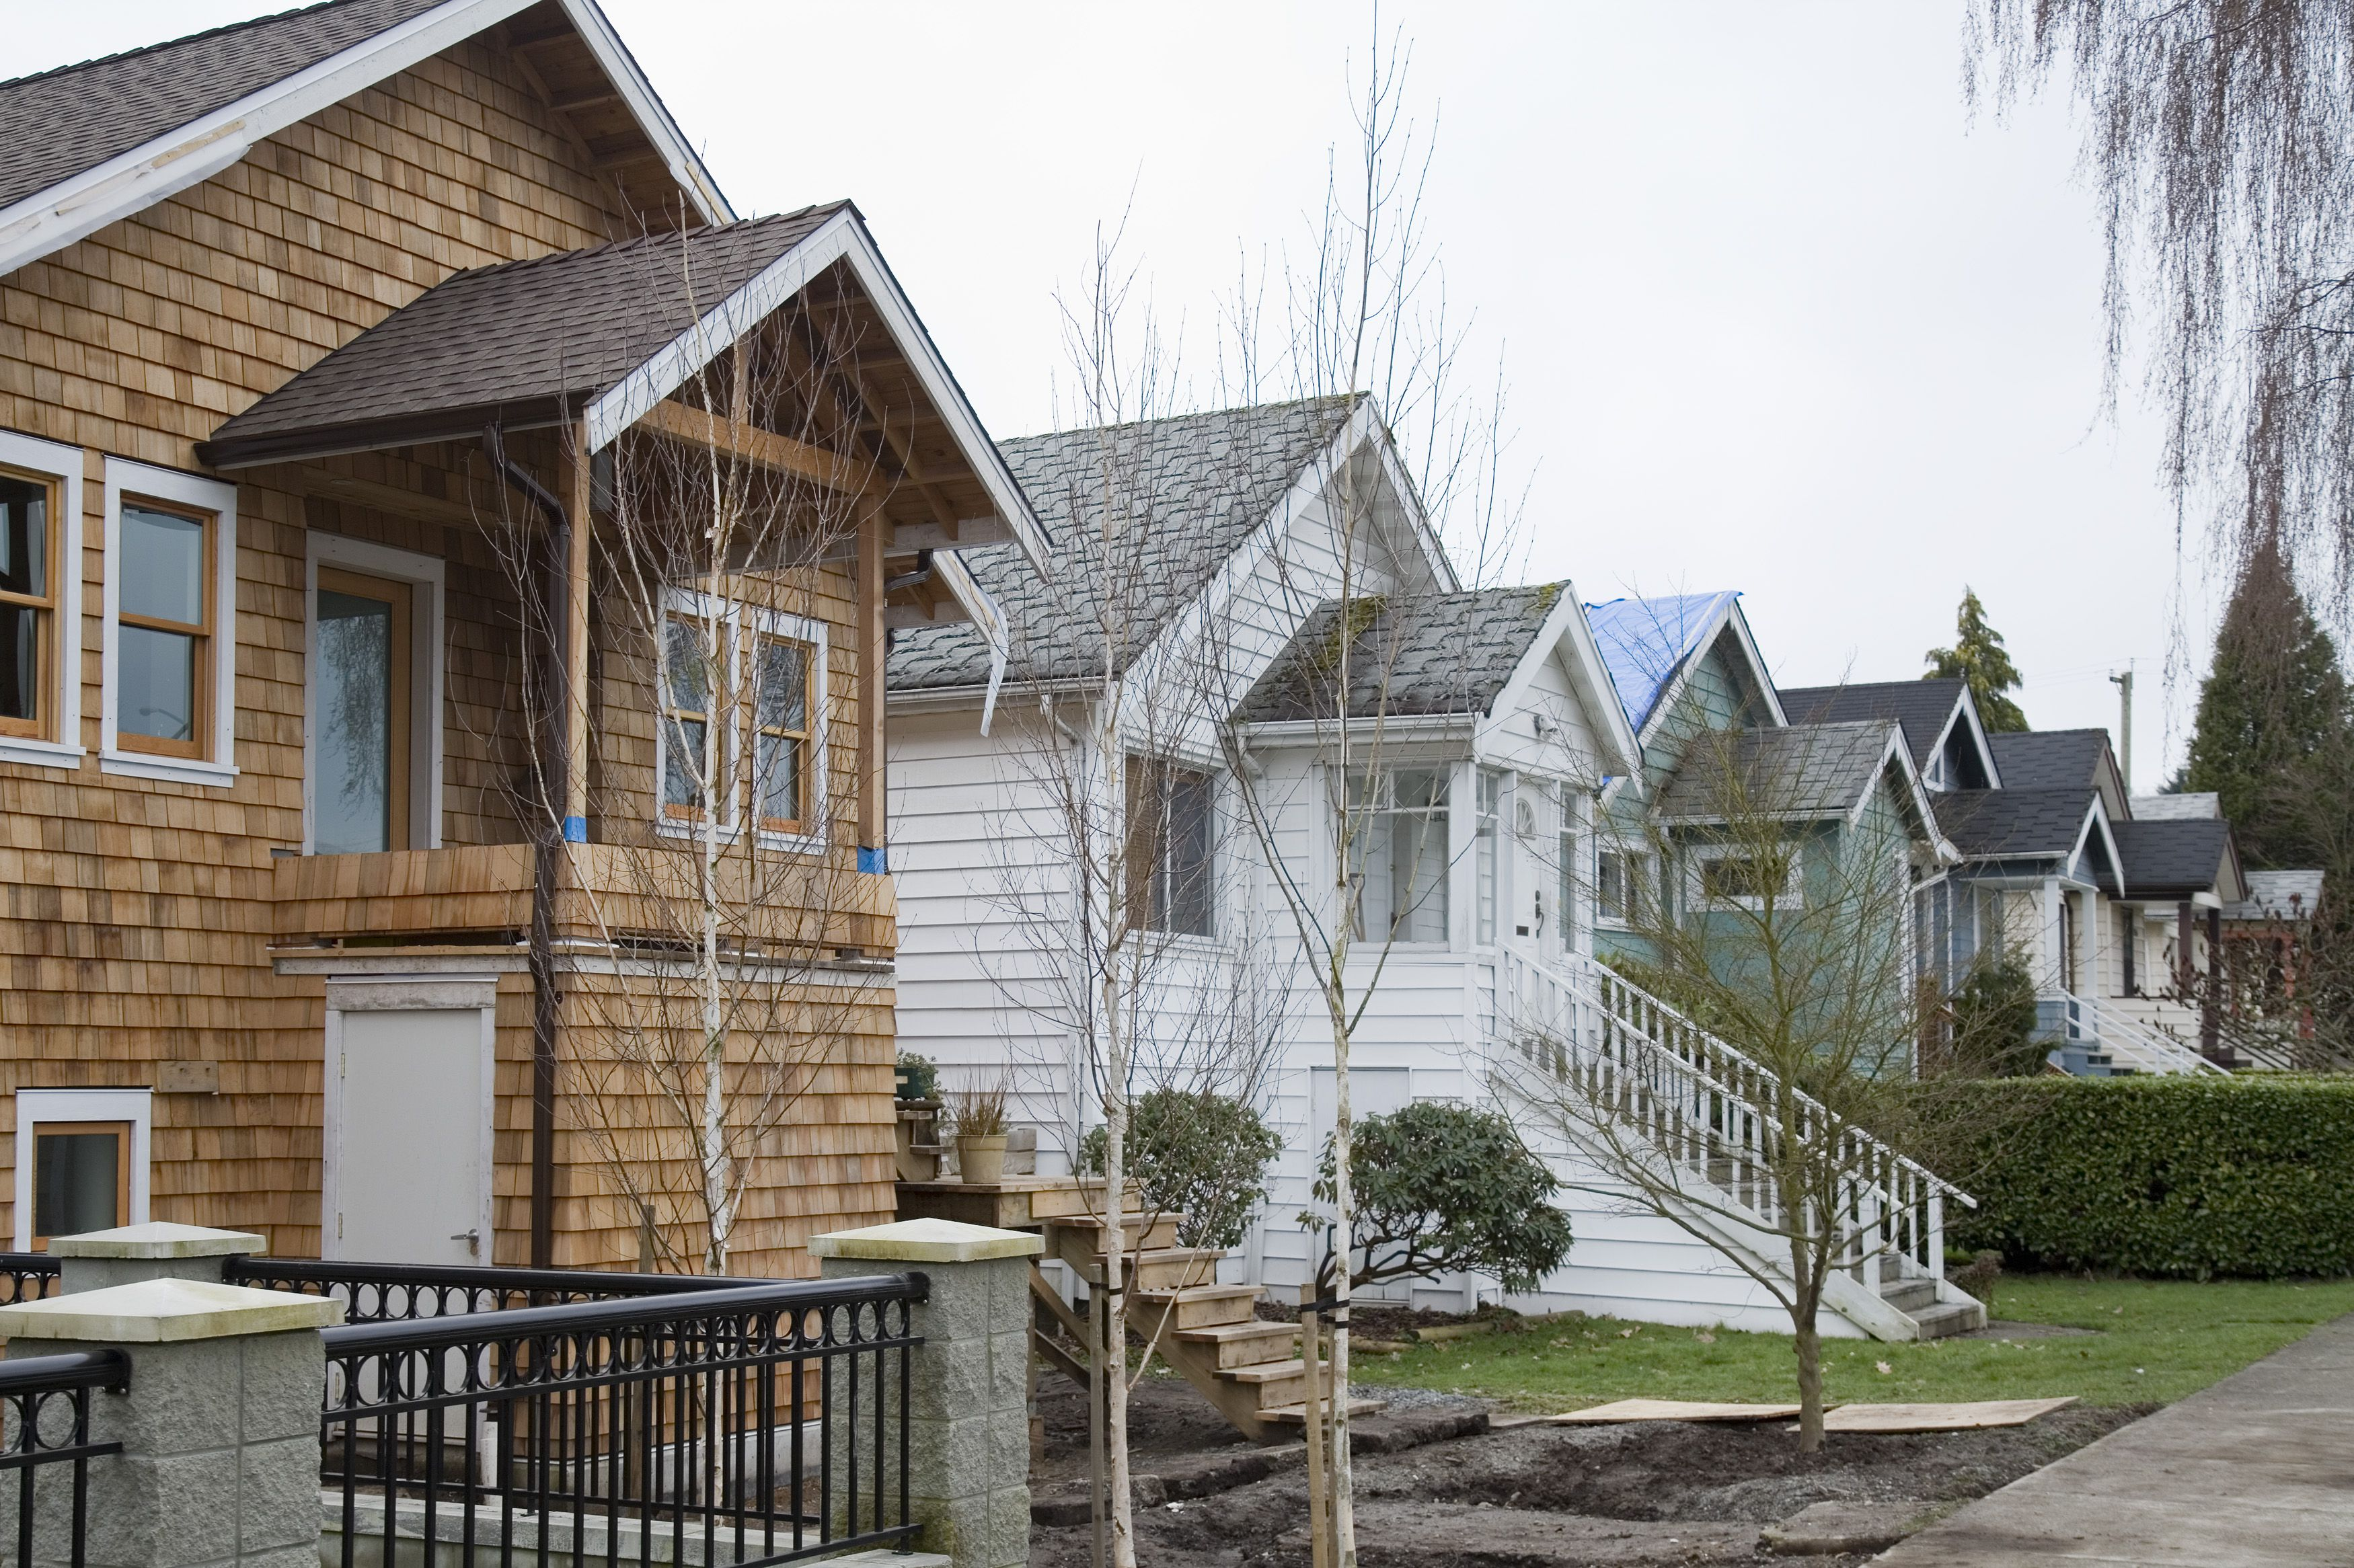 Vancouver development permits surged before building fees increase implemented